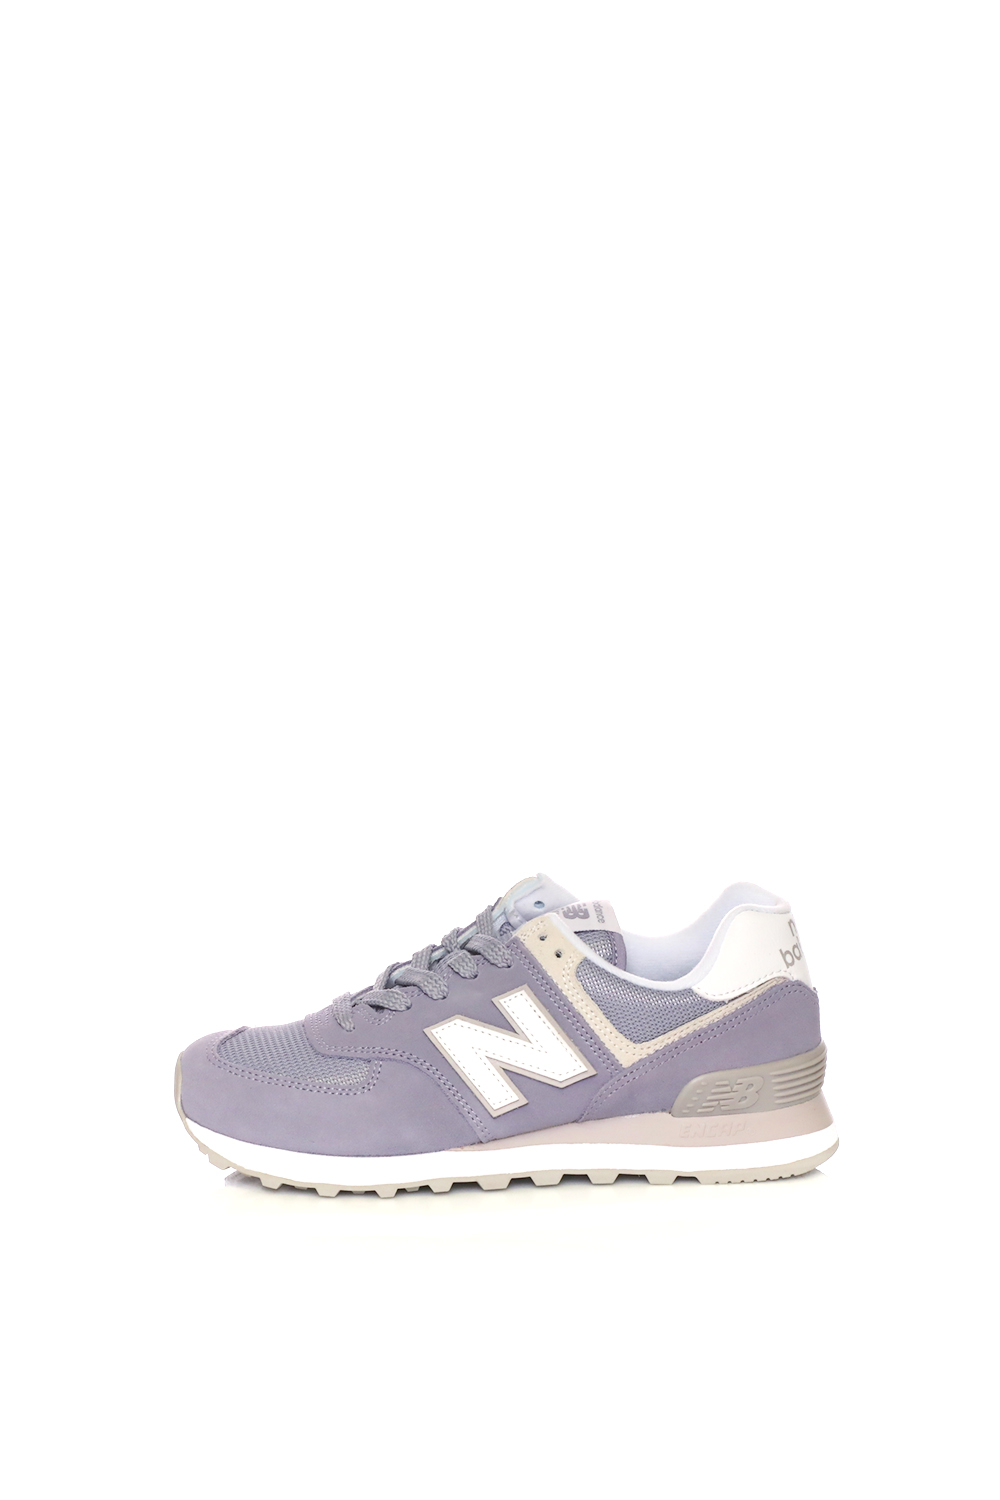 53e56ce844 -50% Collective Online NEW BALANCE – Γυναικεία sneakers NEW BALANCE 574 μοβ